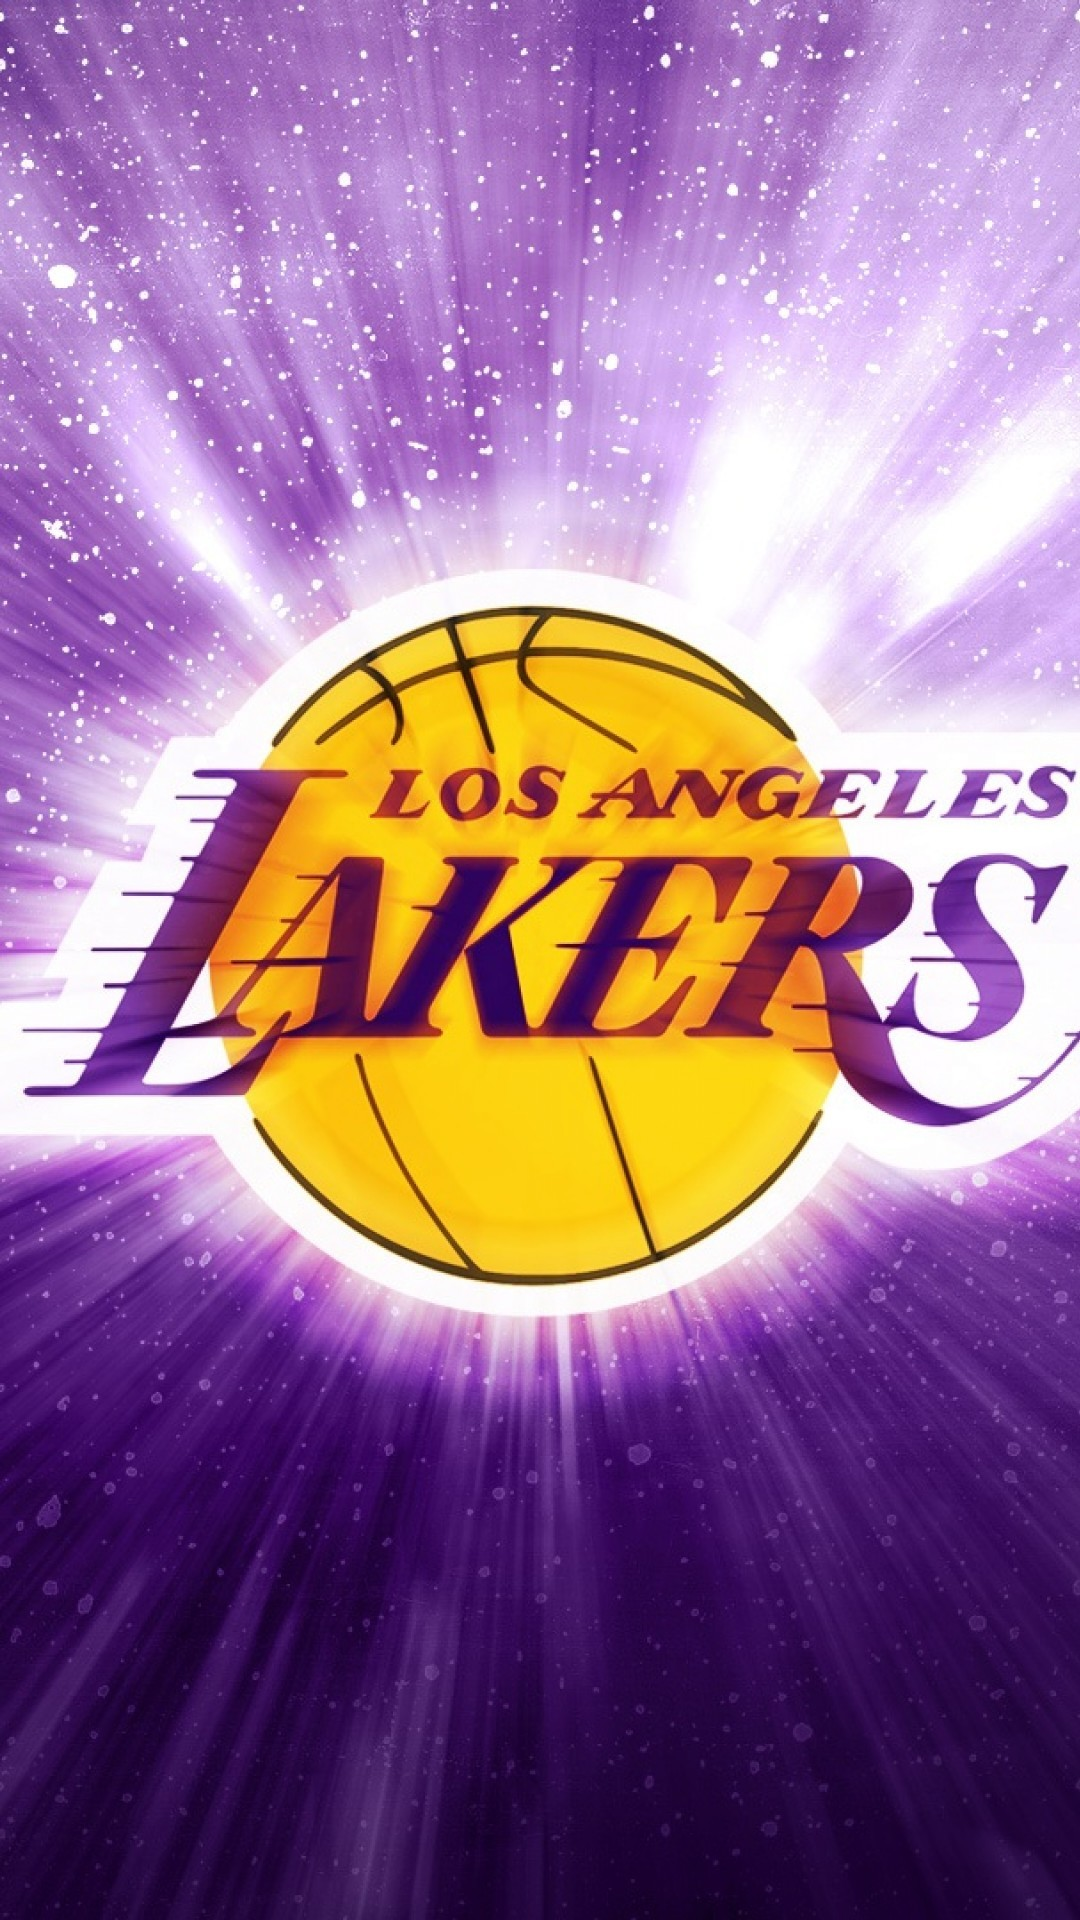 Lakers Wallpapers 77 images 1080x1920